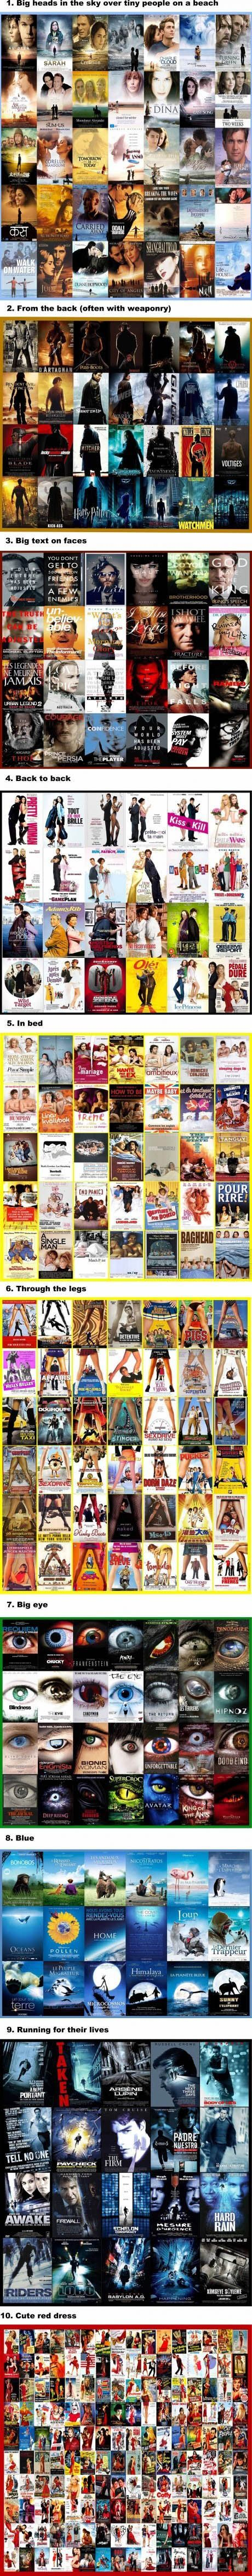 Hollywood has lost their imaginationFilm, Movie Posters, Funny Things, Funny Movie, Picture-Black Posters, Funny Pictures, Unique Movie, Funny Stuff, Posters Cliche